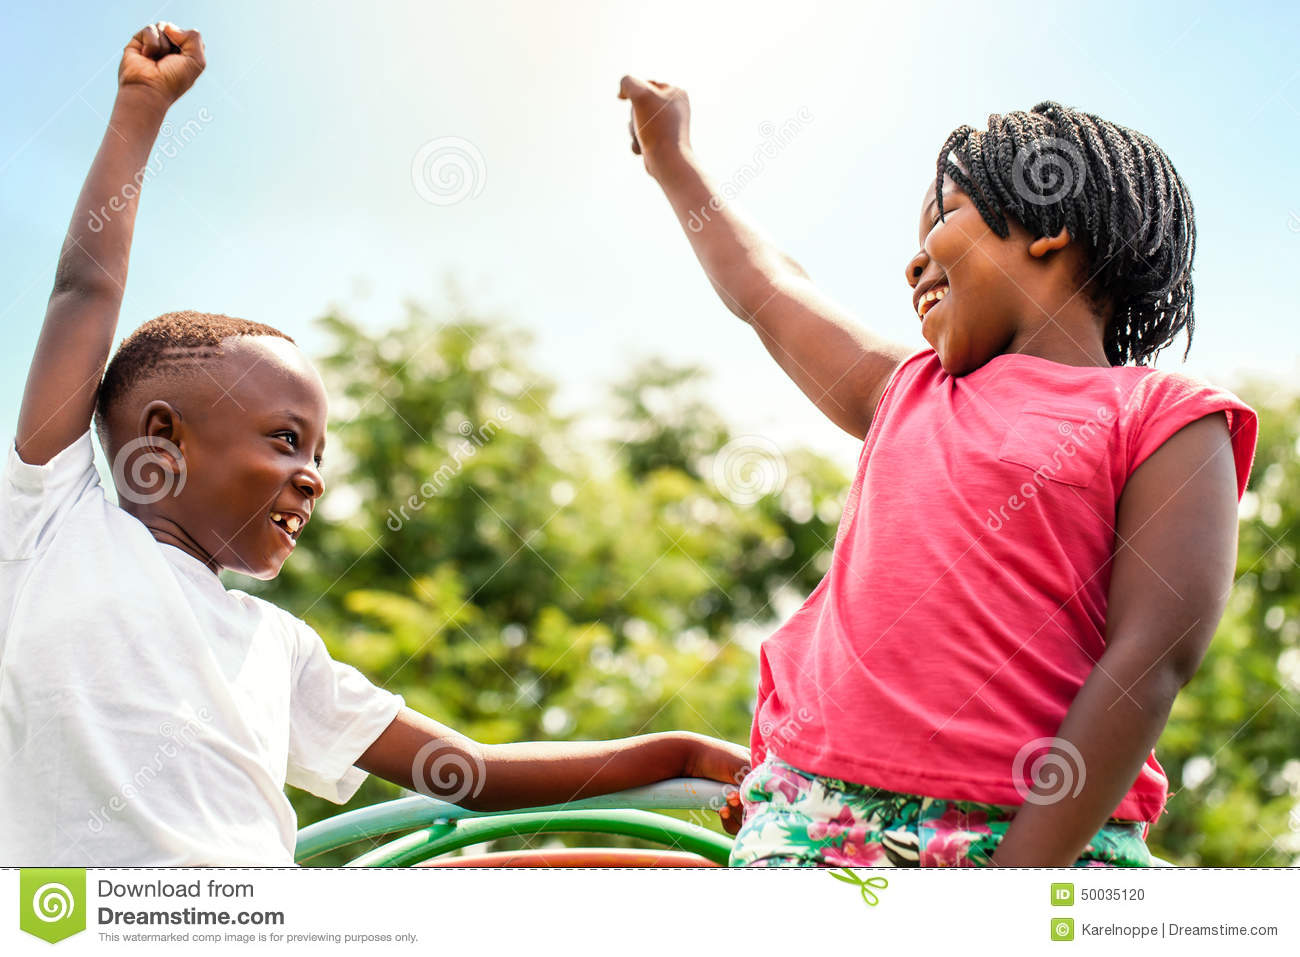 African kids looking at each other raising hands.